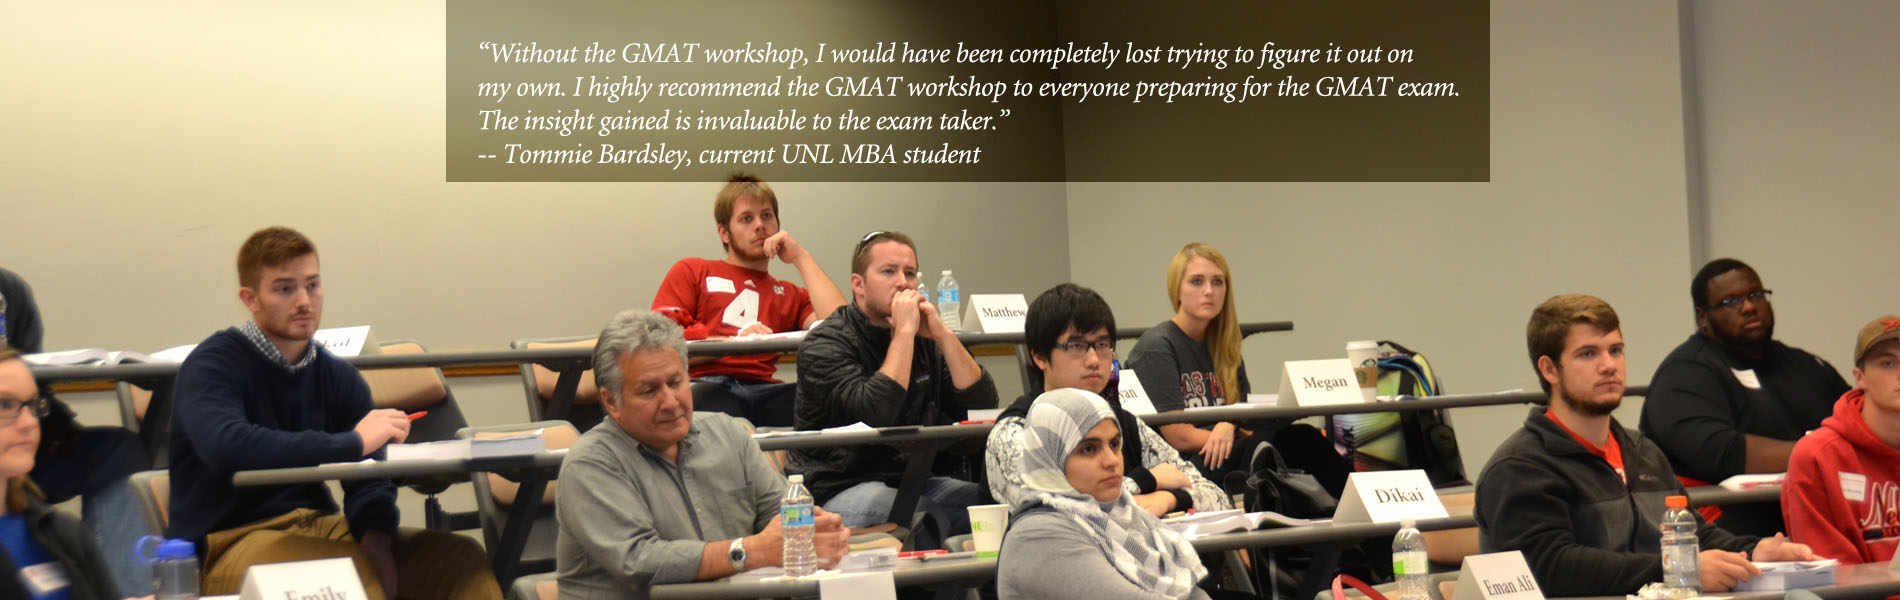 GMAT Workshop